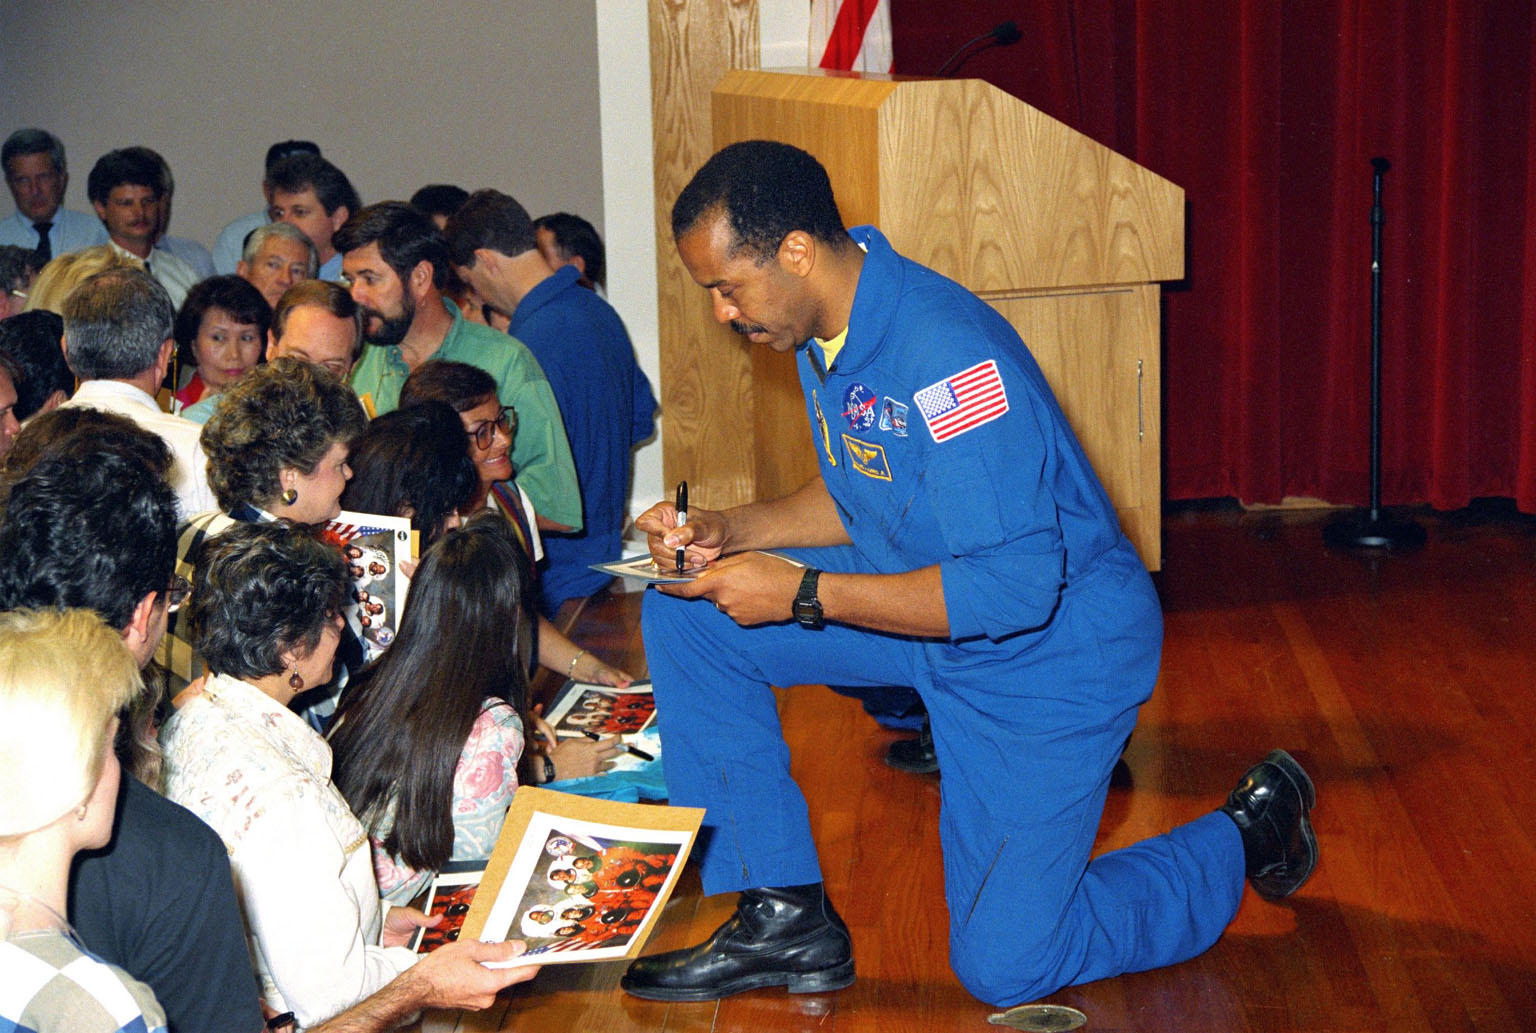 KENNEDY SPACE CENTER, FLA. -- STS-63 Mission Specialist Dr. Bernard Harris autographs copies of the crew photograph in the Training Auditorium during a March crew visit to thank employees for their help in ensuring a successful mission. The six-member crew on Discovery, who landed February 11 after an eight-day flight, included Mission Commander James Wetherbee, Pilot Eileen Collins (on the first flight of a female Shuttle pilot), and Mission Specialists Michael Foale, Janice Voss and Vladimir Titov. The mission featured another milestone, the first approach and flyaround of a Shuttle with Russian Space Station Mir. It was also the second flight of a russian cosmonaut on Shuttle and the third flight of the SPACEHAB module, which carried 20 experiments in biotechnology, advanced materials development, technology demonstrations and other measurements.